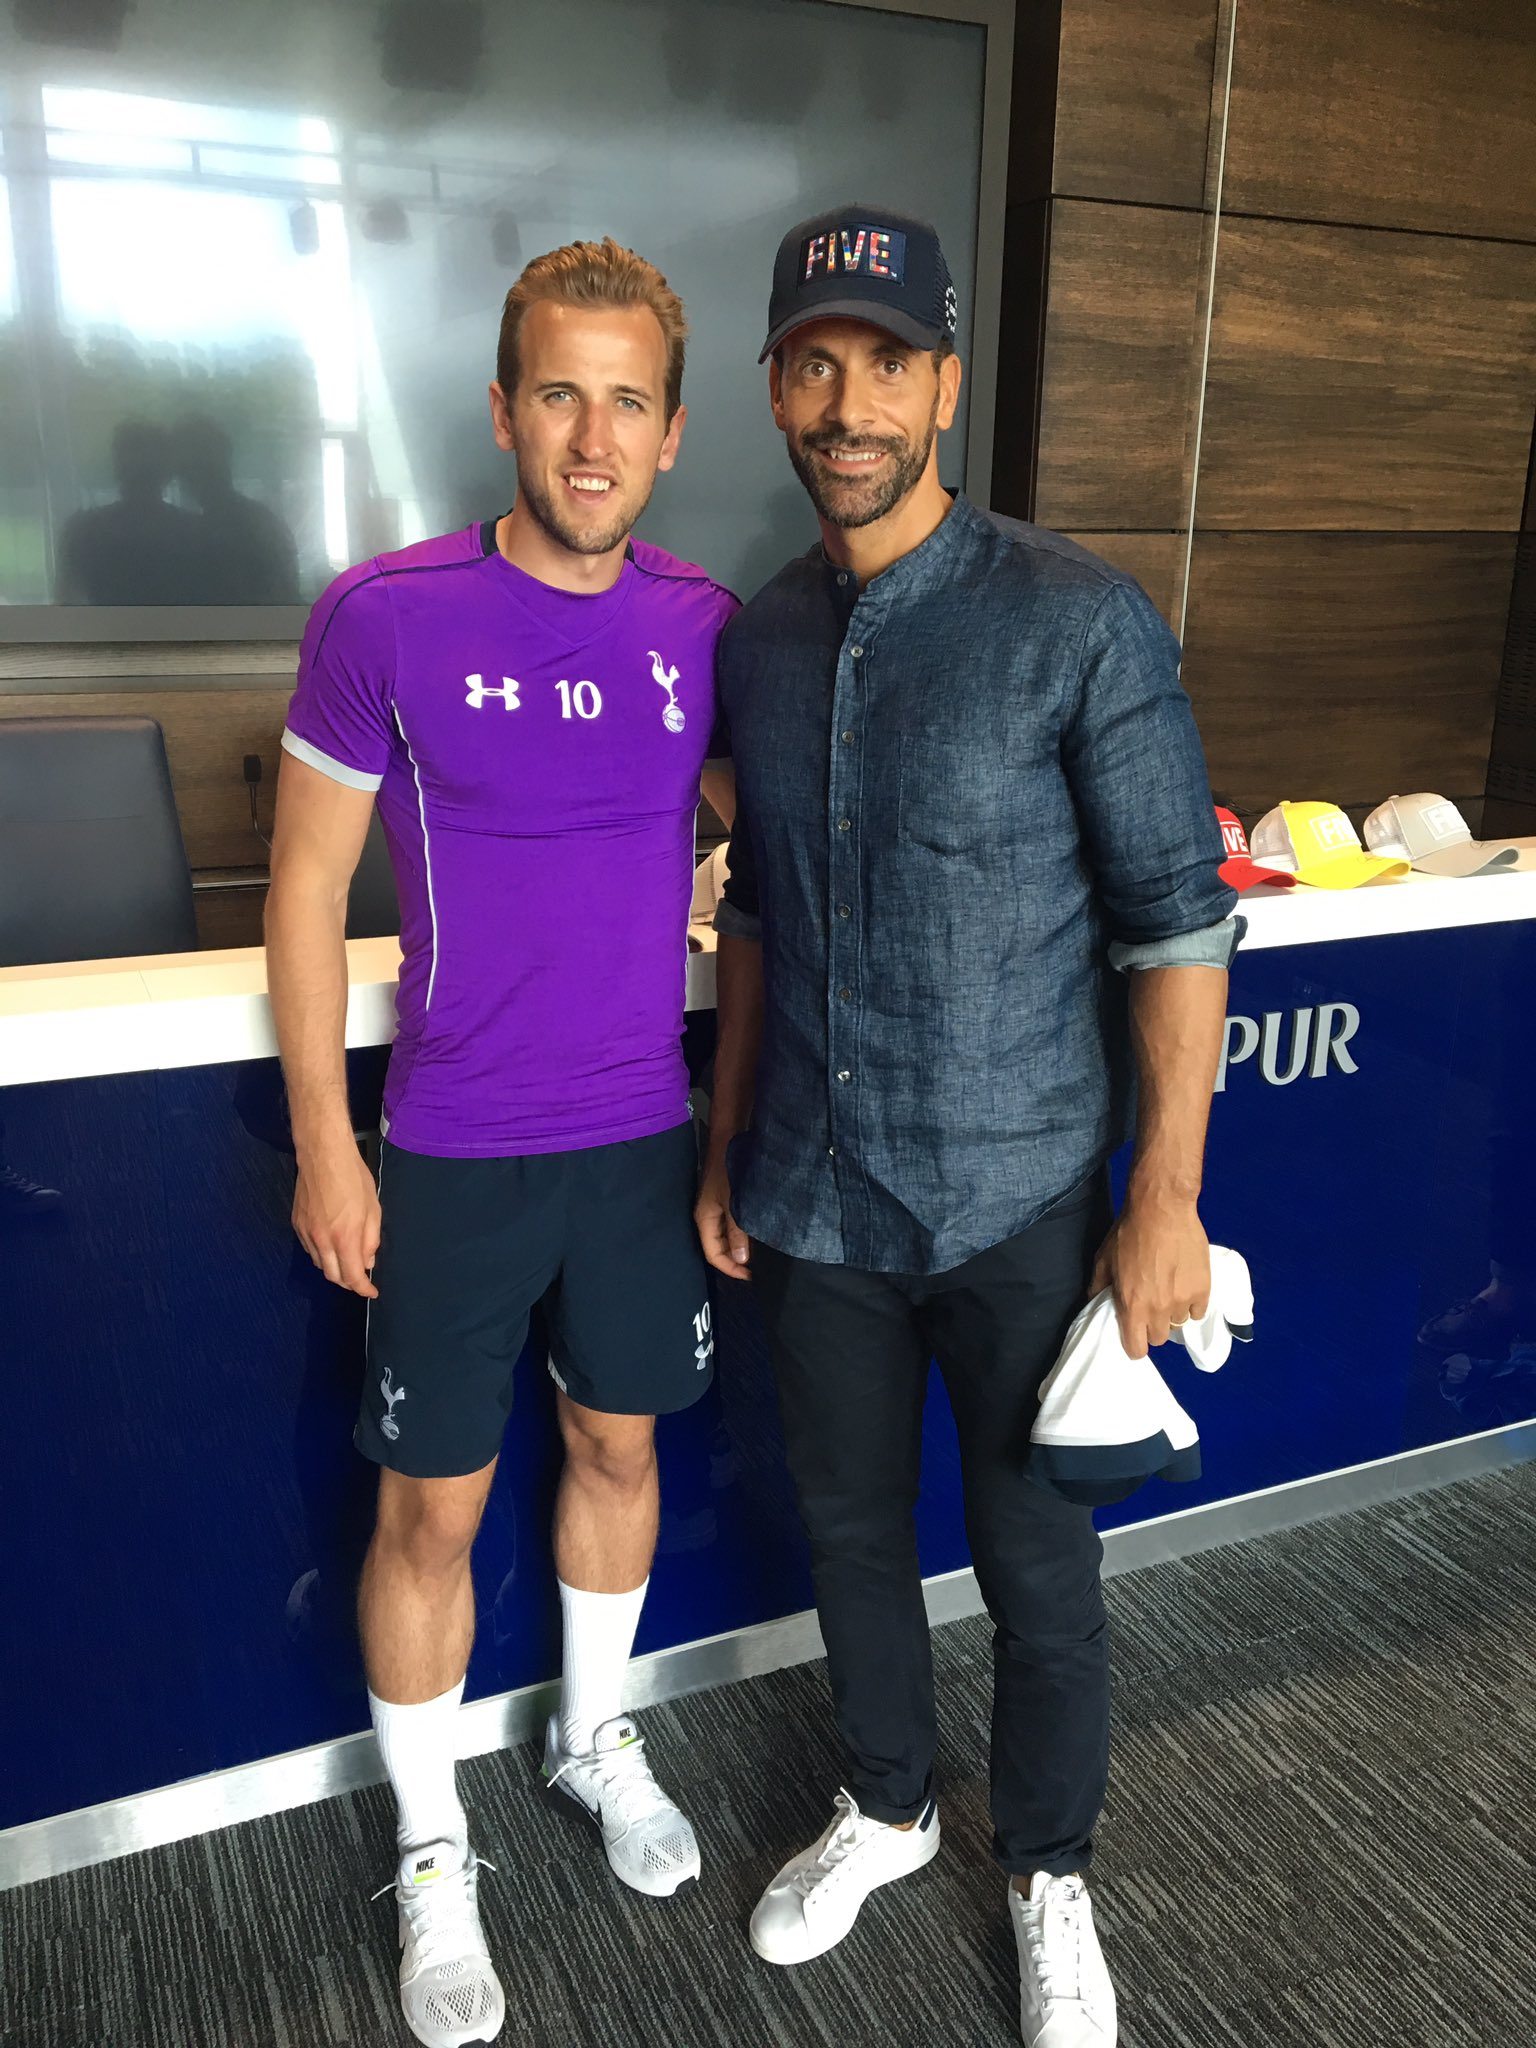 Decent day interviewing @HKane yesterday for @5mag / Lives and breathes scoring goals! Big summer ahead for @England https://t.co/ntsMppTa9X